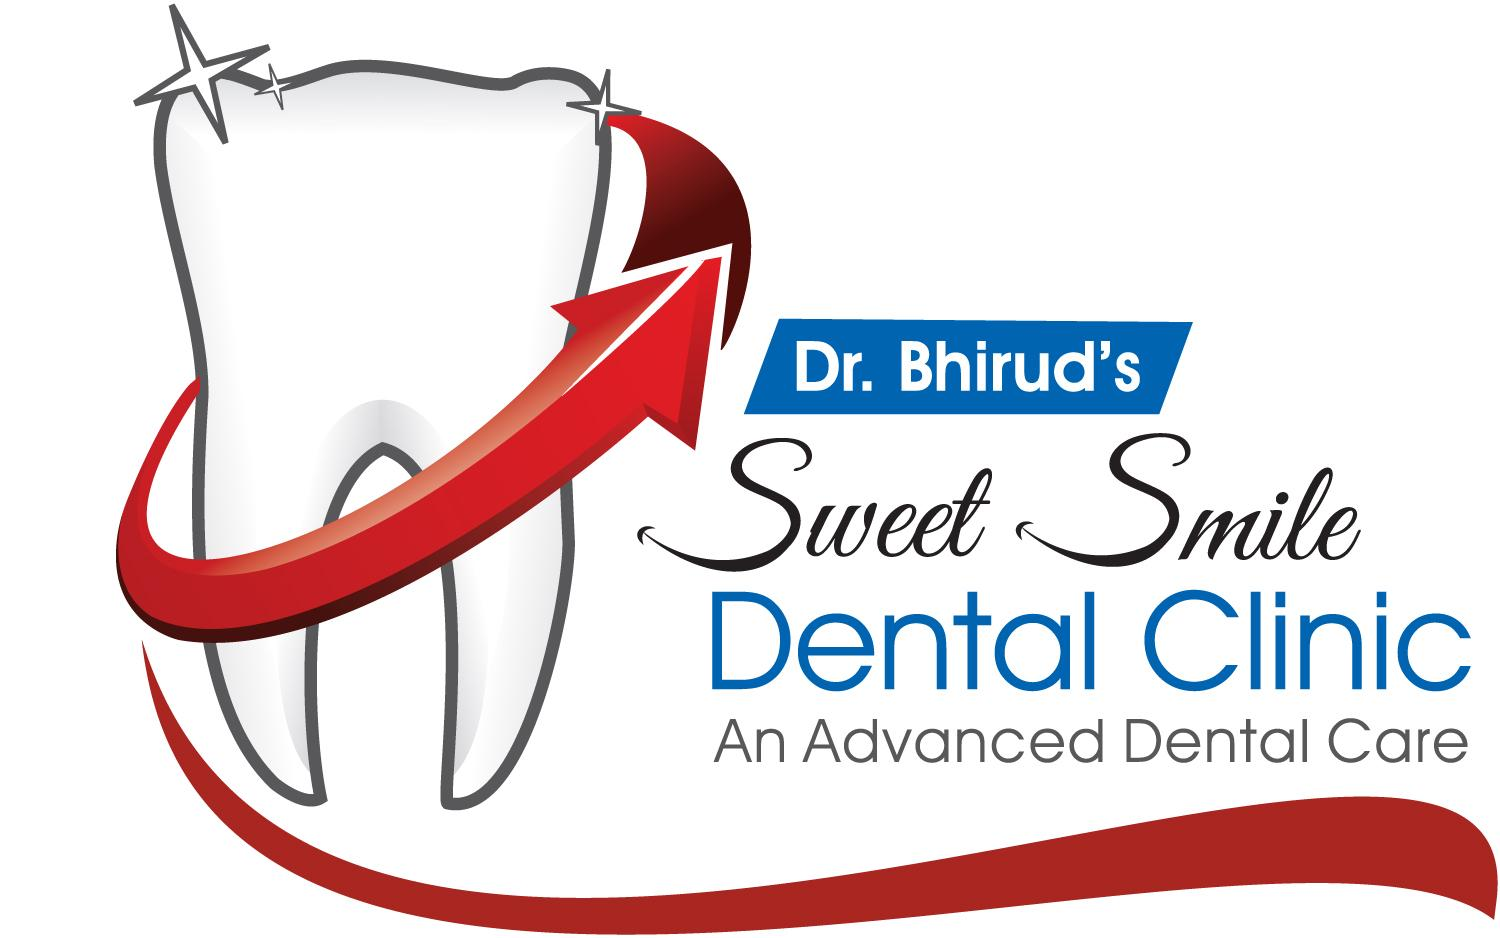 Dr. Bhirud's Sweet Smile Dental Clinic